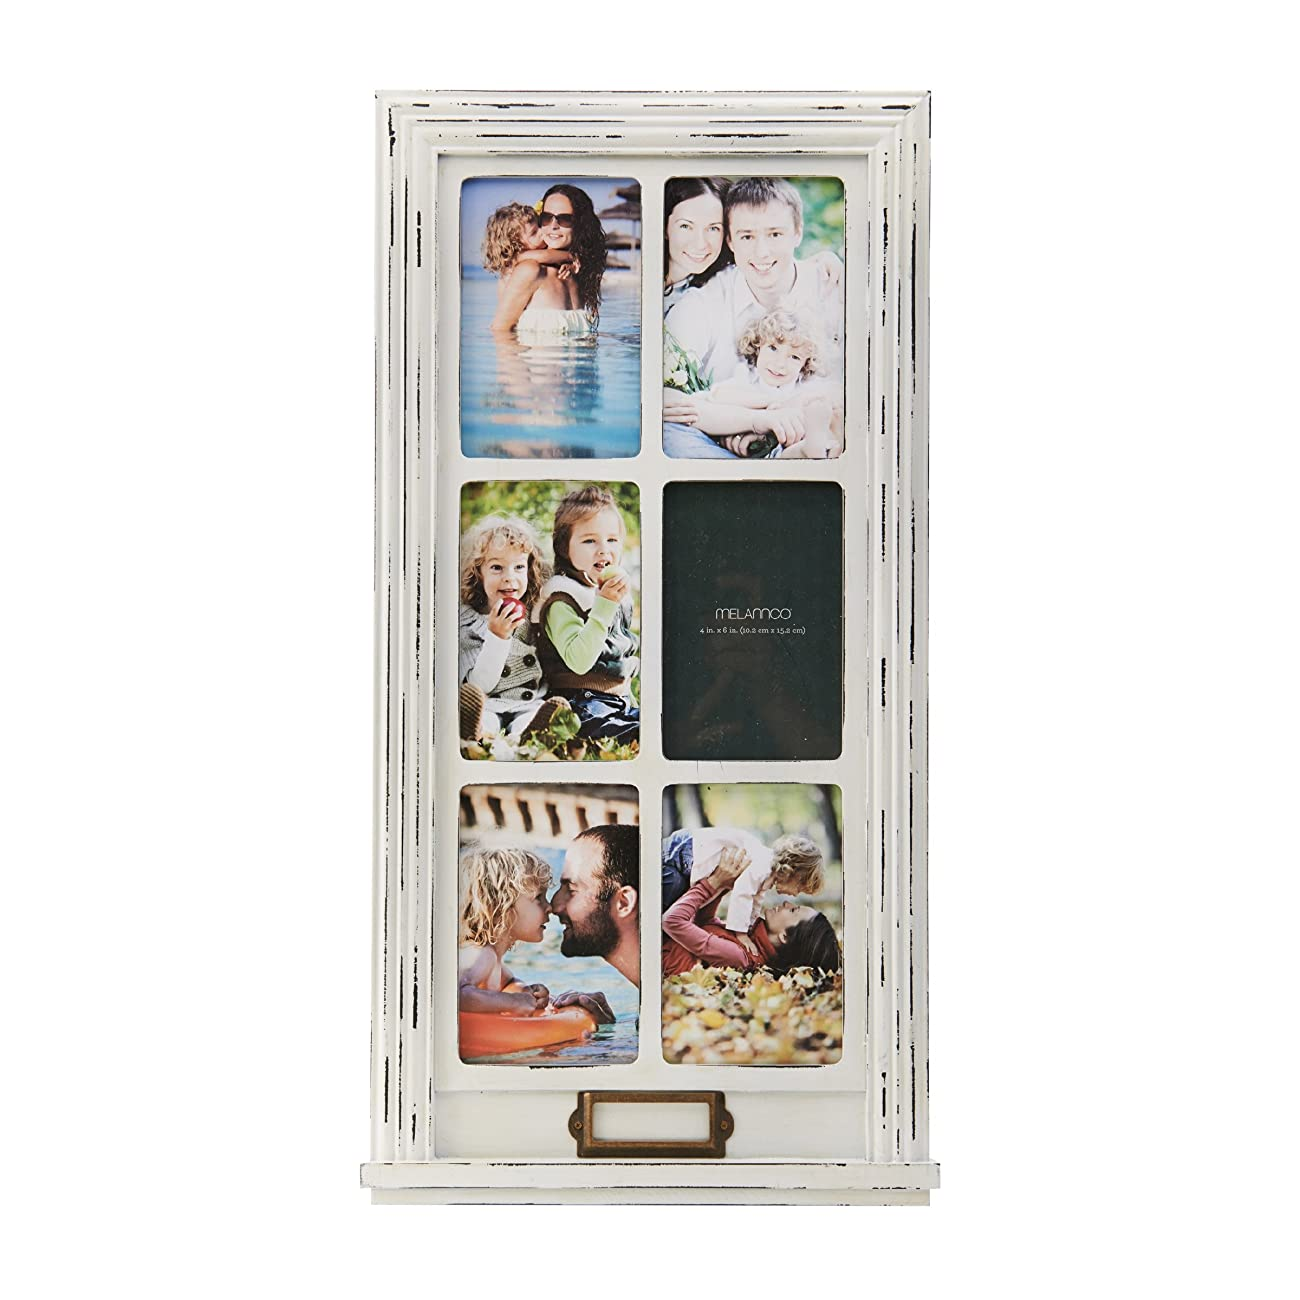 Melannco 6-Opening Distressed Window Collage (White, 11.3x0.75x21.85-Inch) 0